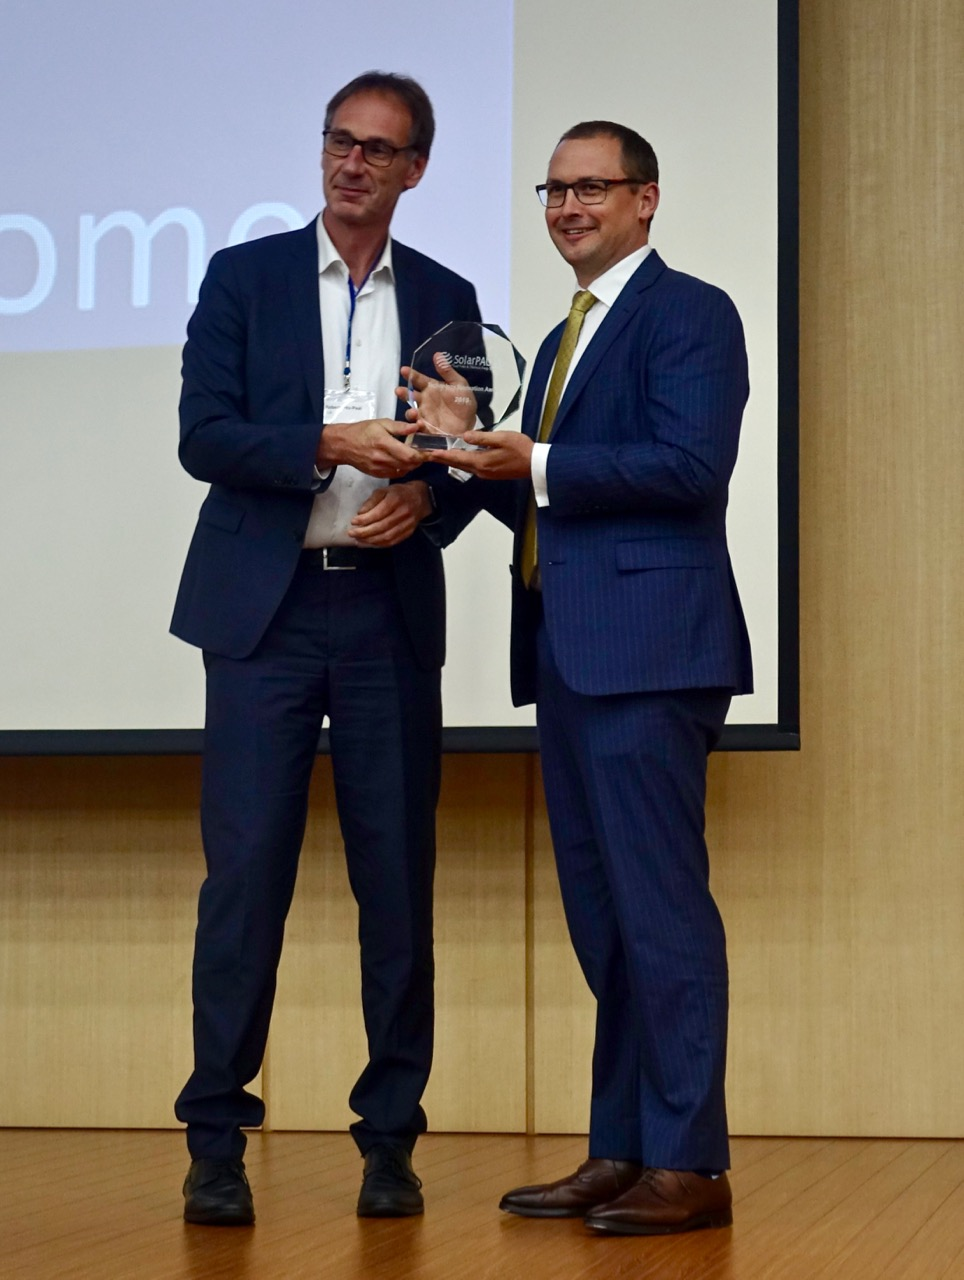 Robert Pitz-Paal, Chairman of SolarPACES present Craig Wood with the 2019 SolarPACES Technology Innovation Award